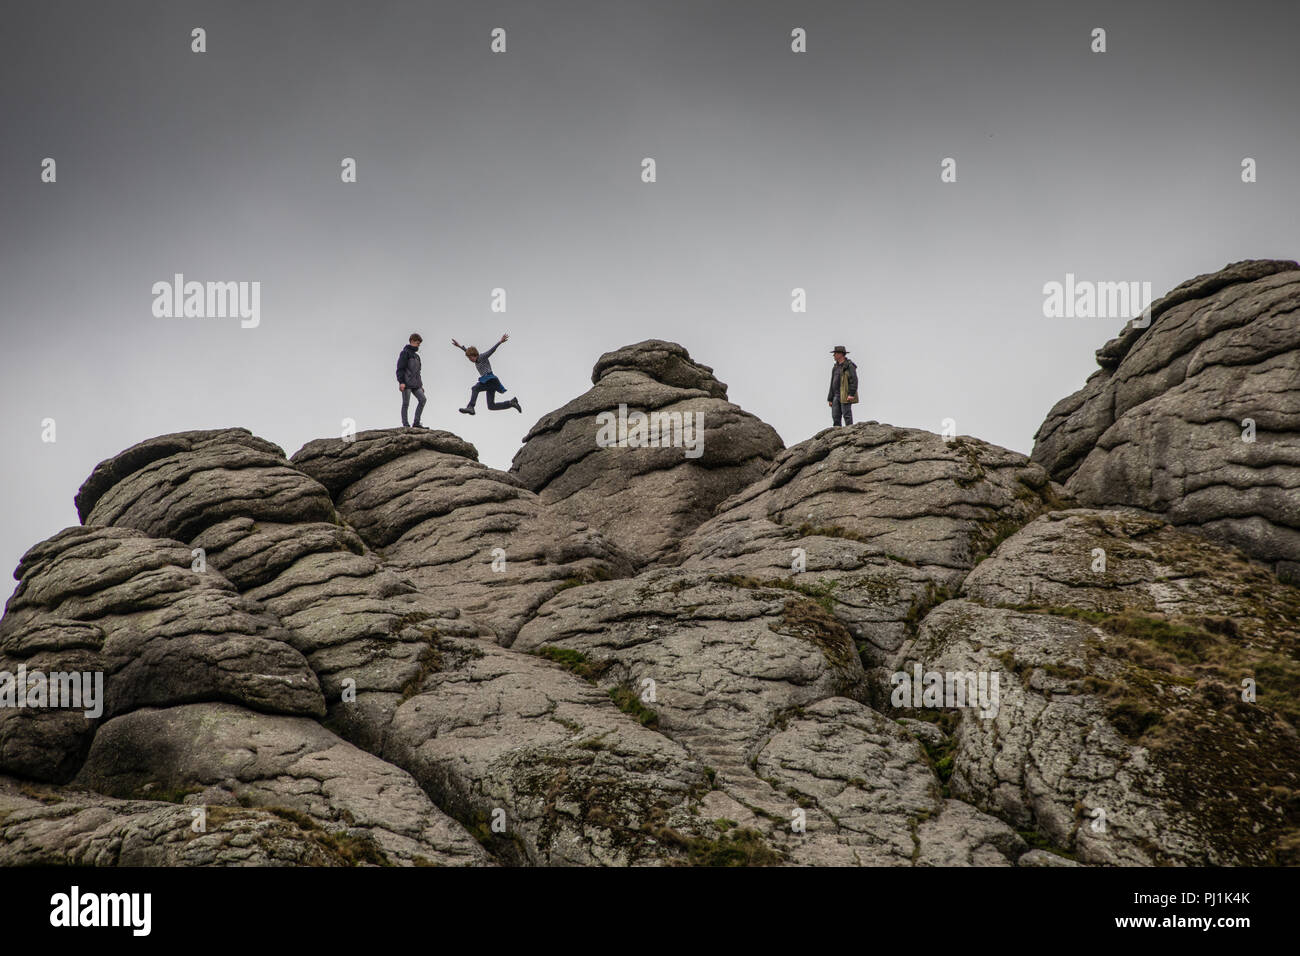 Rock hopping on Haytor on Dartmoor, UK - Stock Image